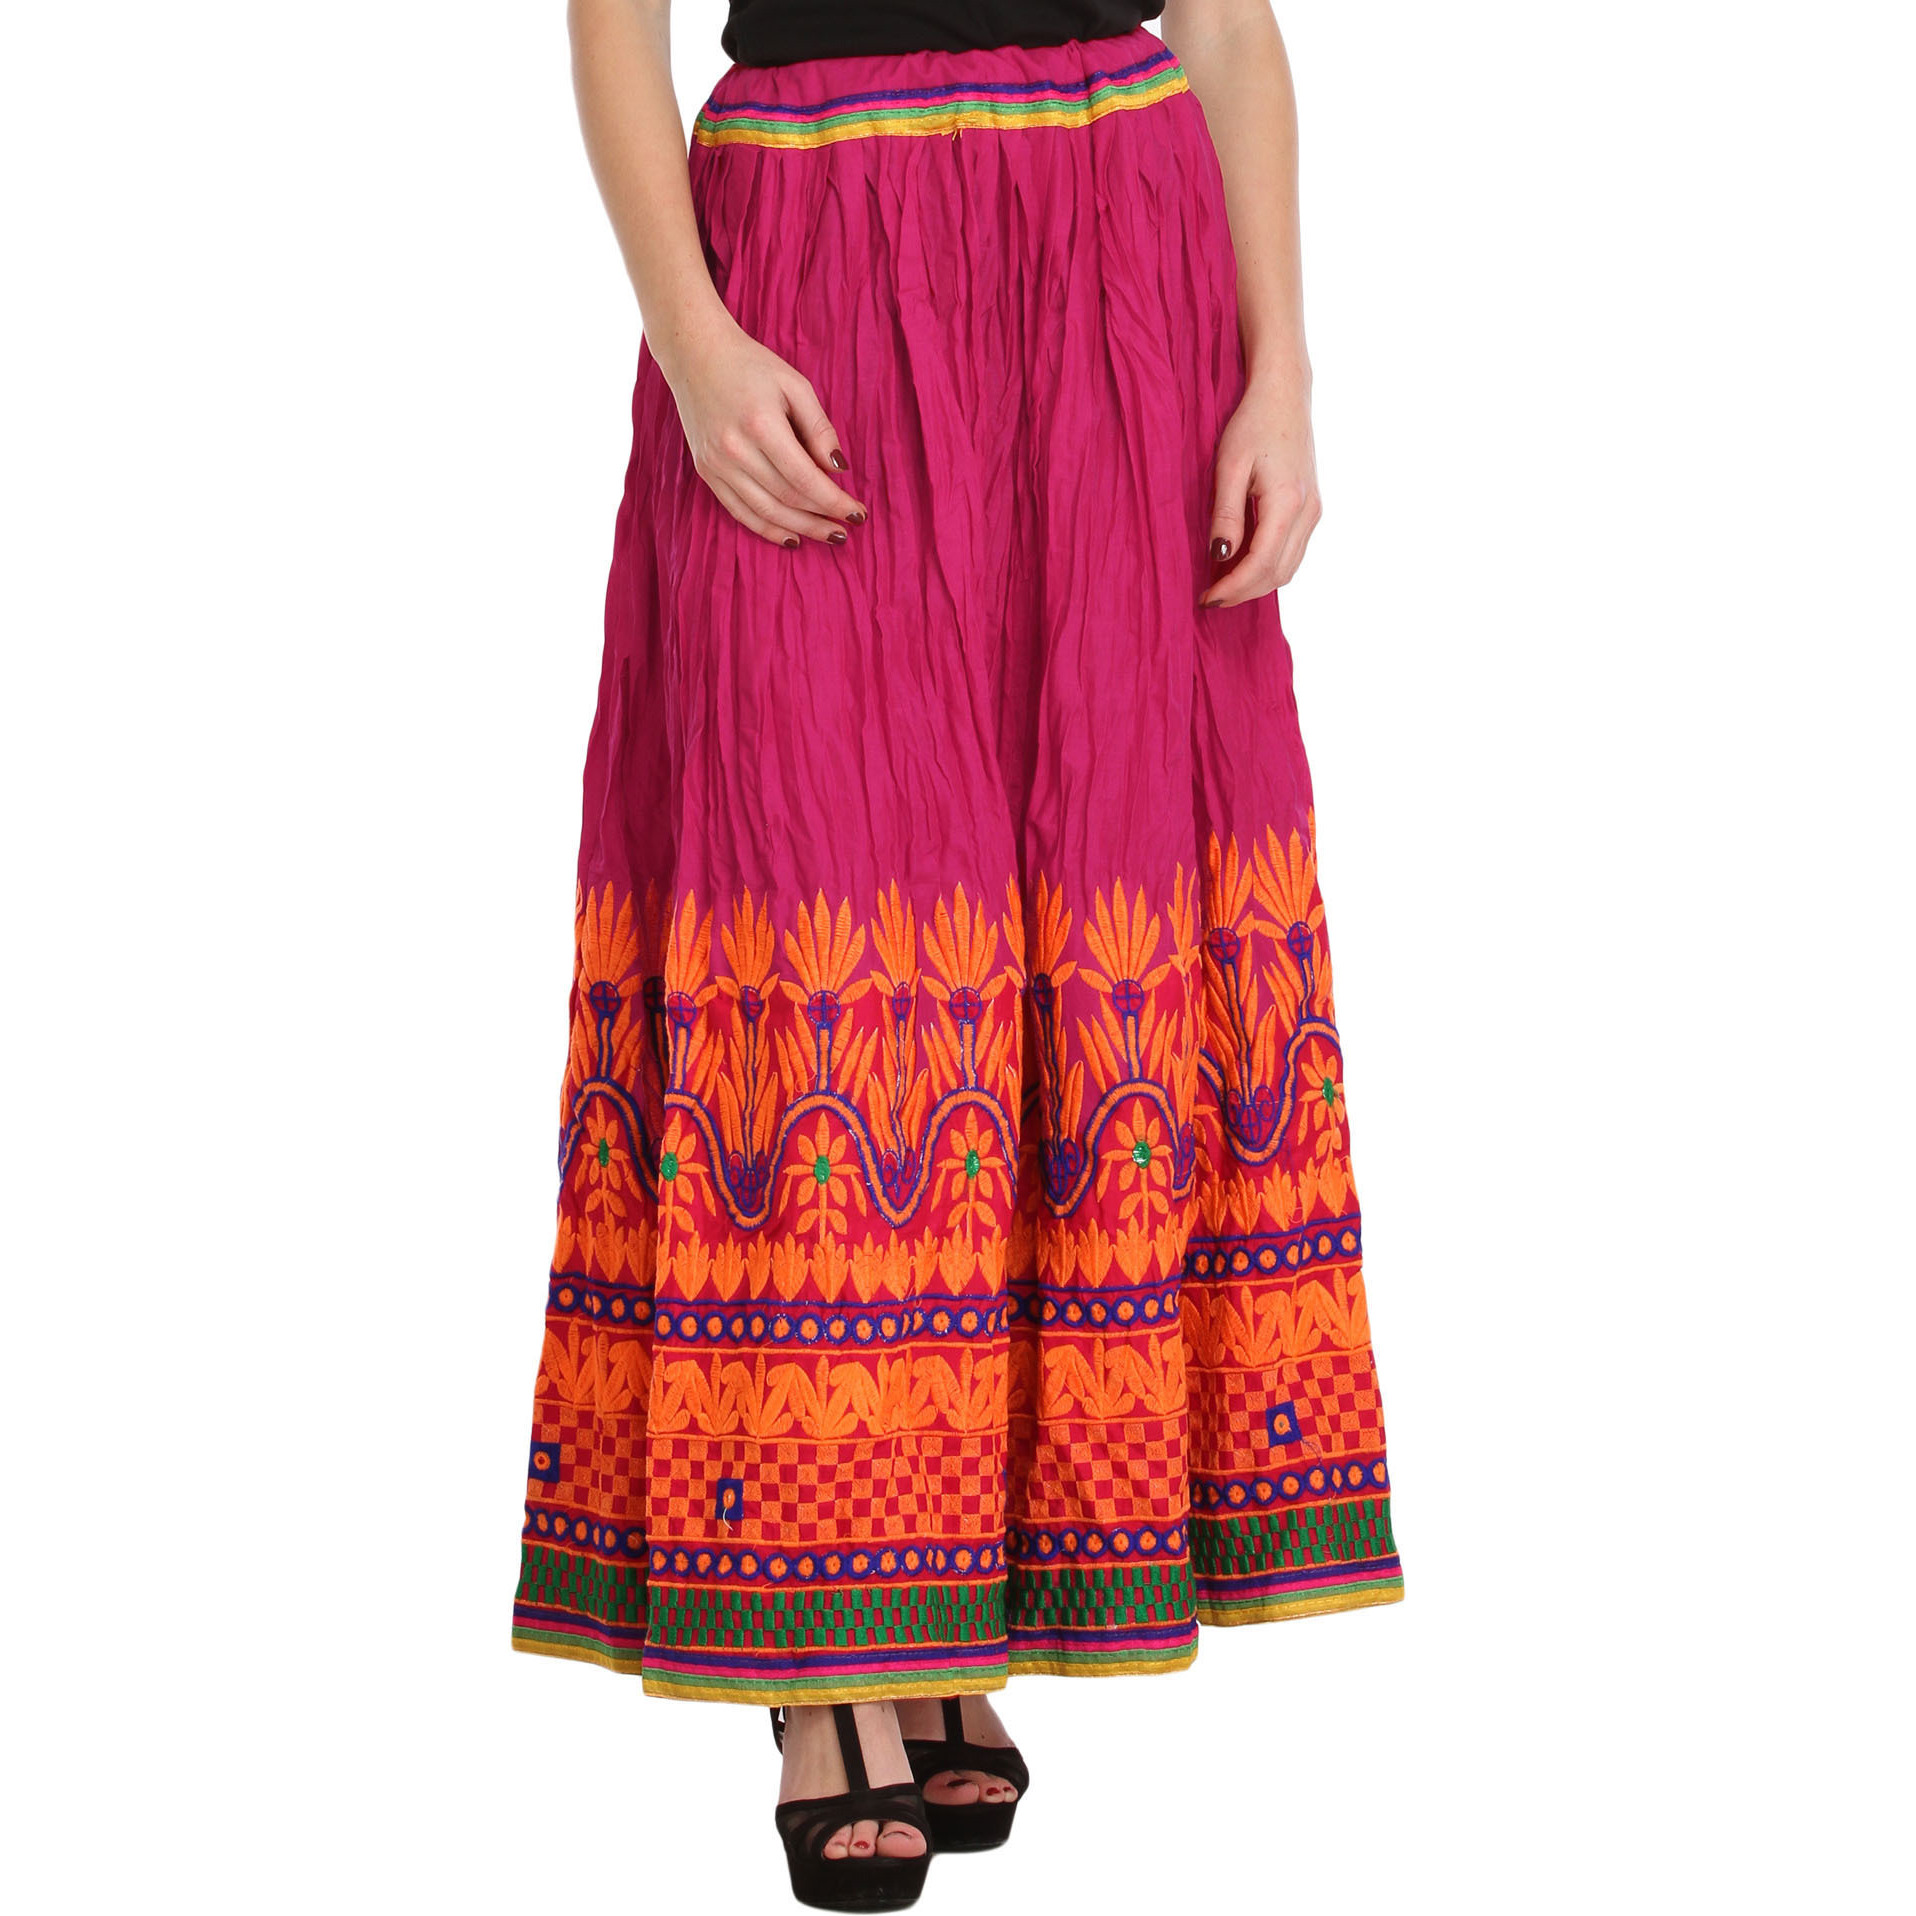 Fuchsia-Rose Ghagra Skirt from Gujarat with Embroidery on Border